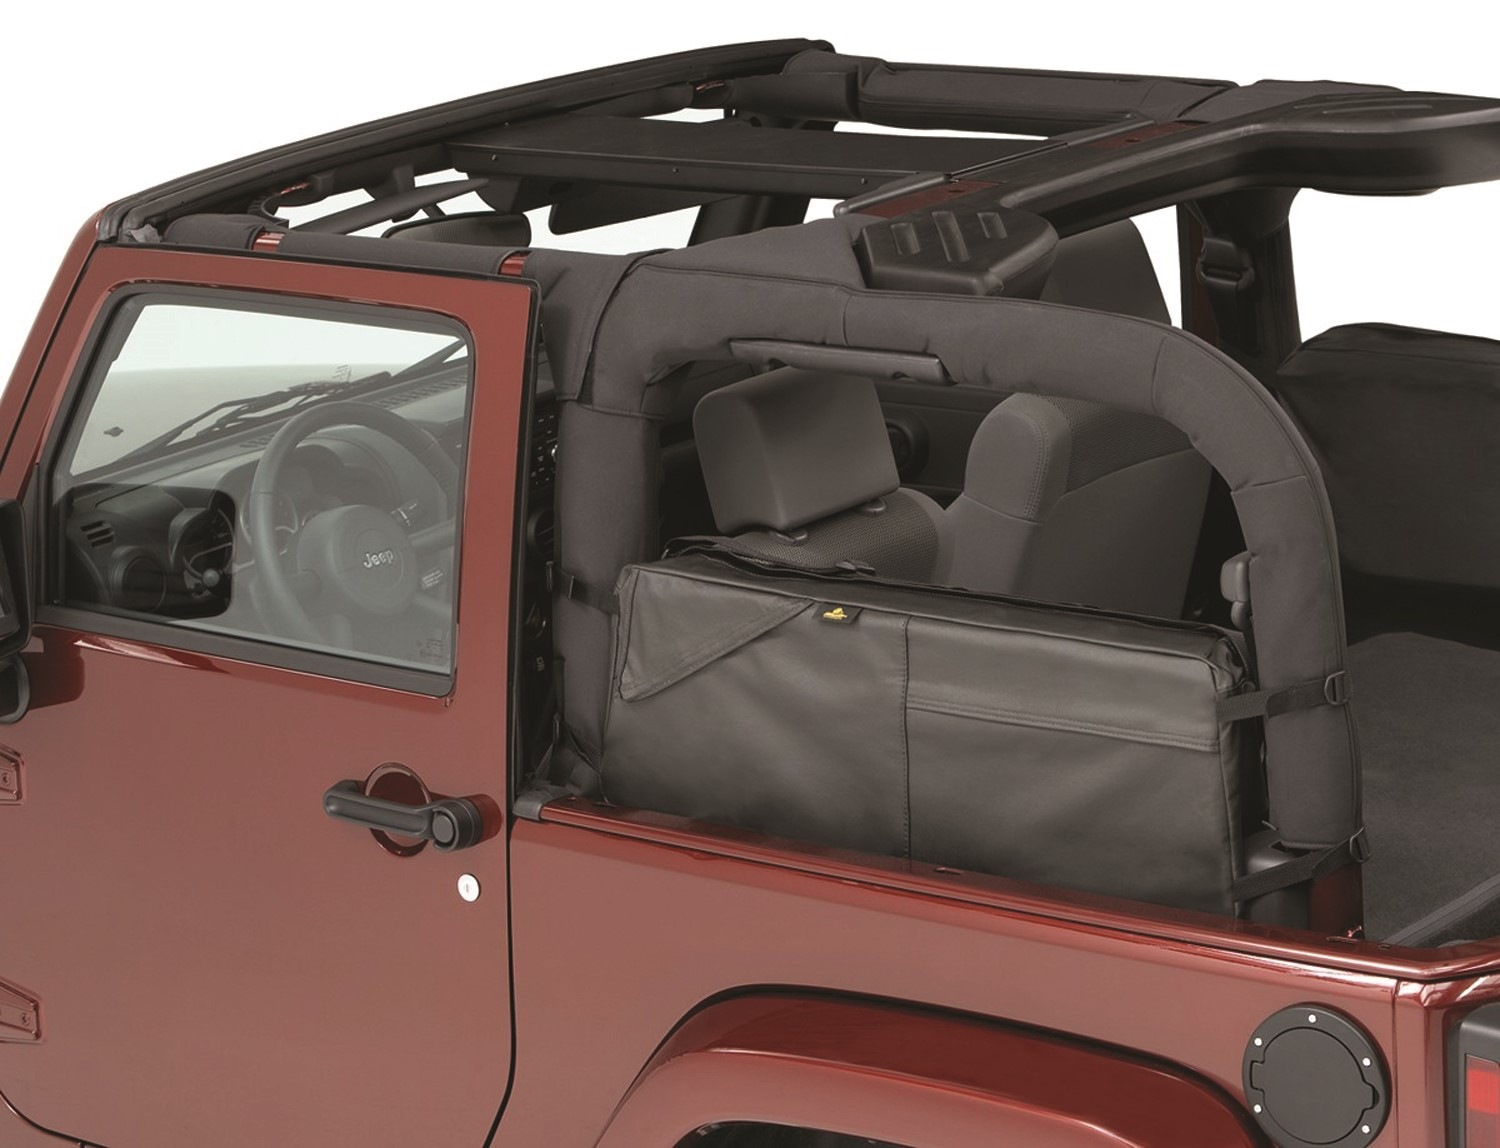 Get your Jeep Saddle Bag